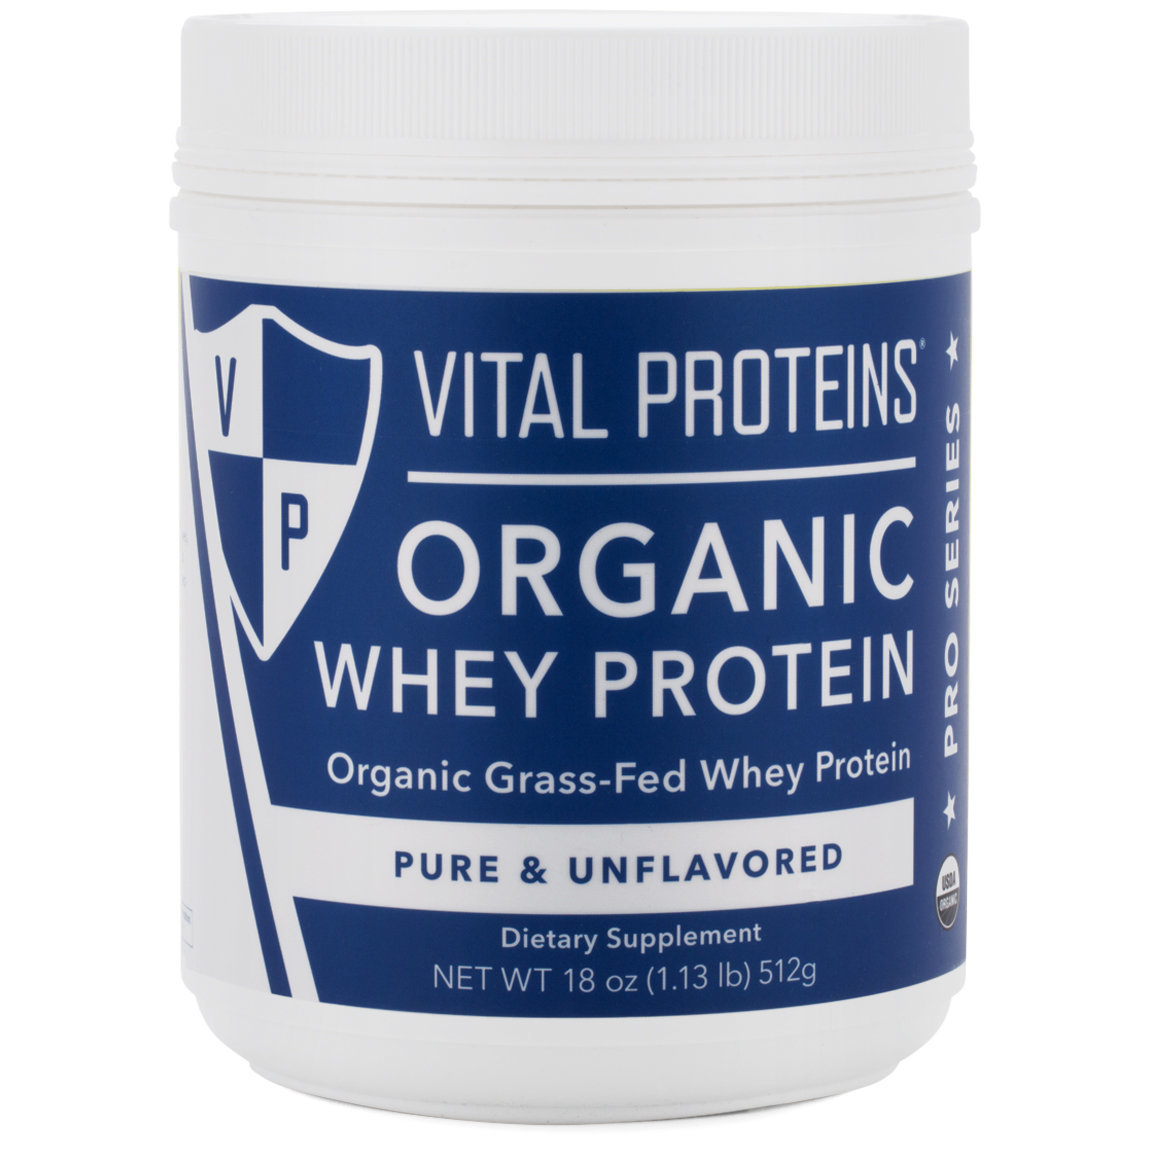 Vital Proteins Organic Whey Protein product swatch.